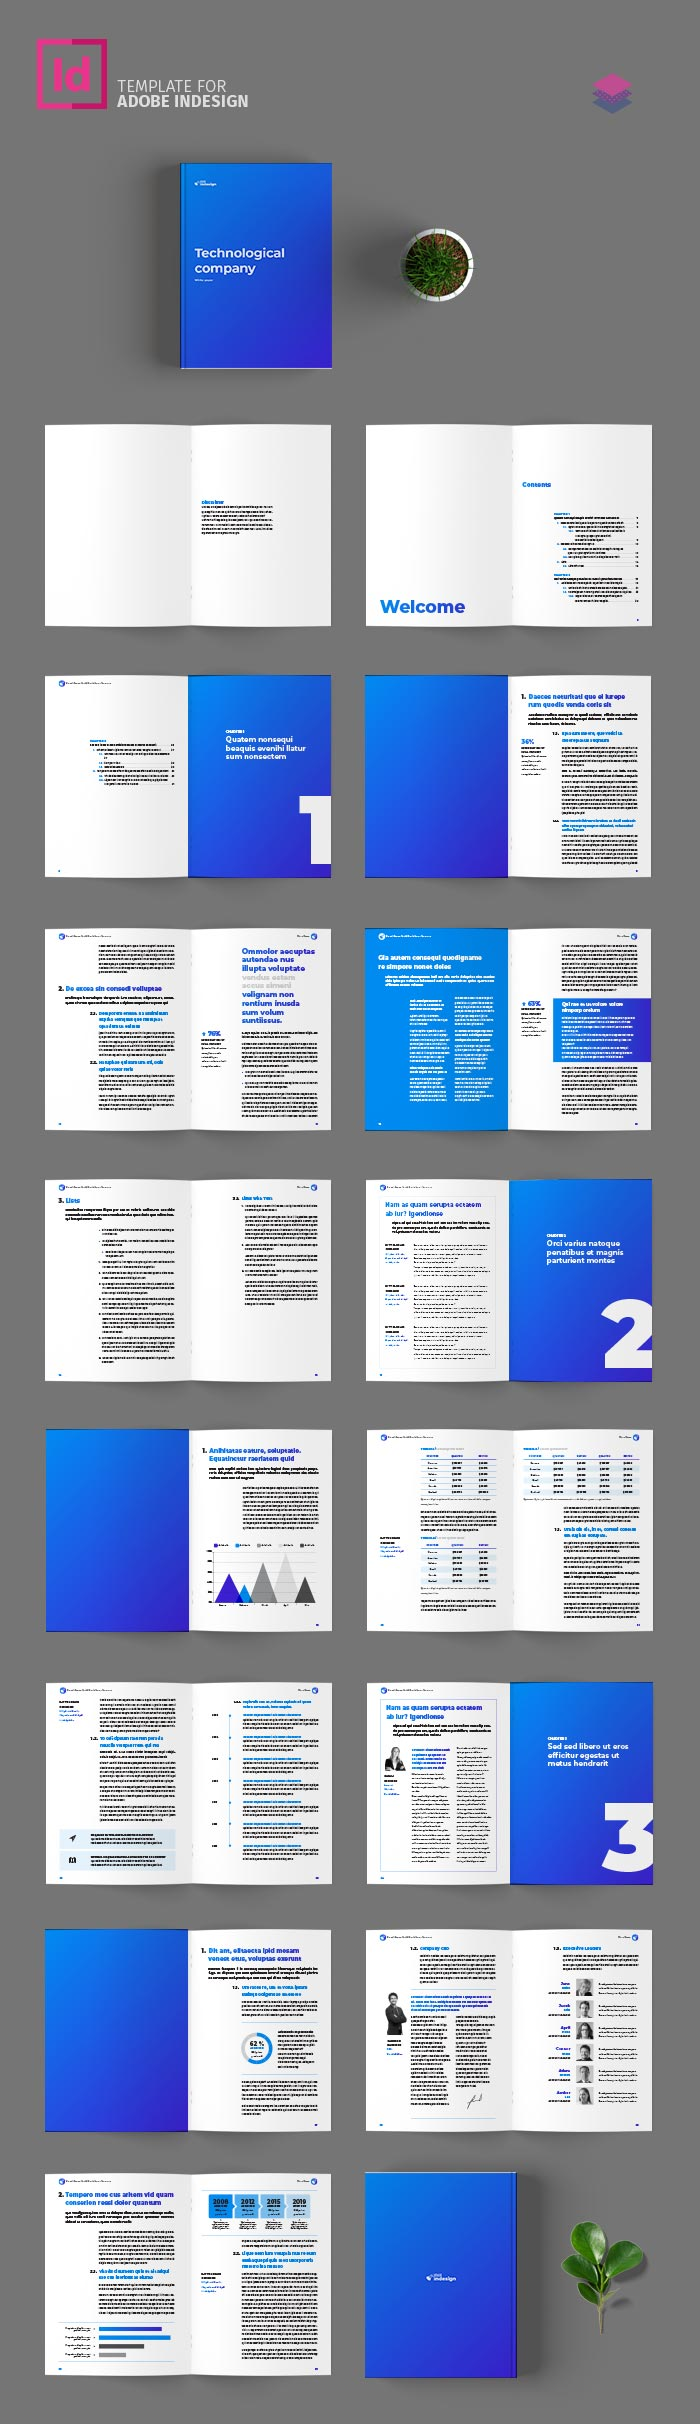 White Paper Template for InDesign